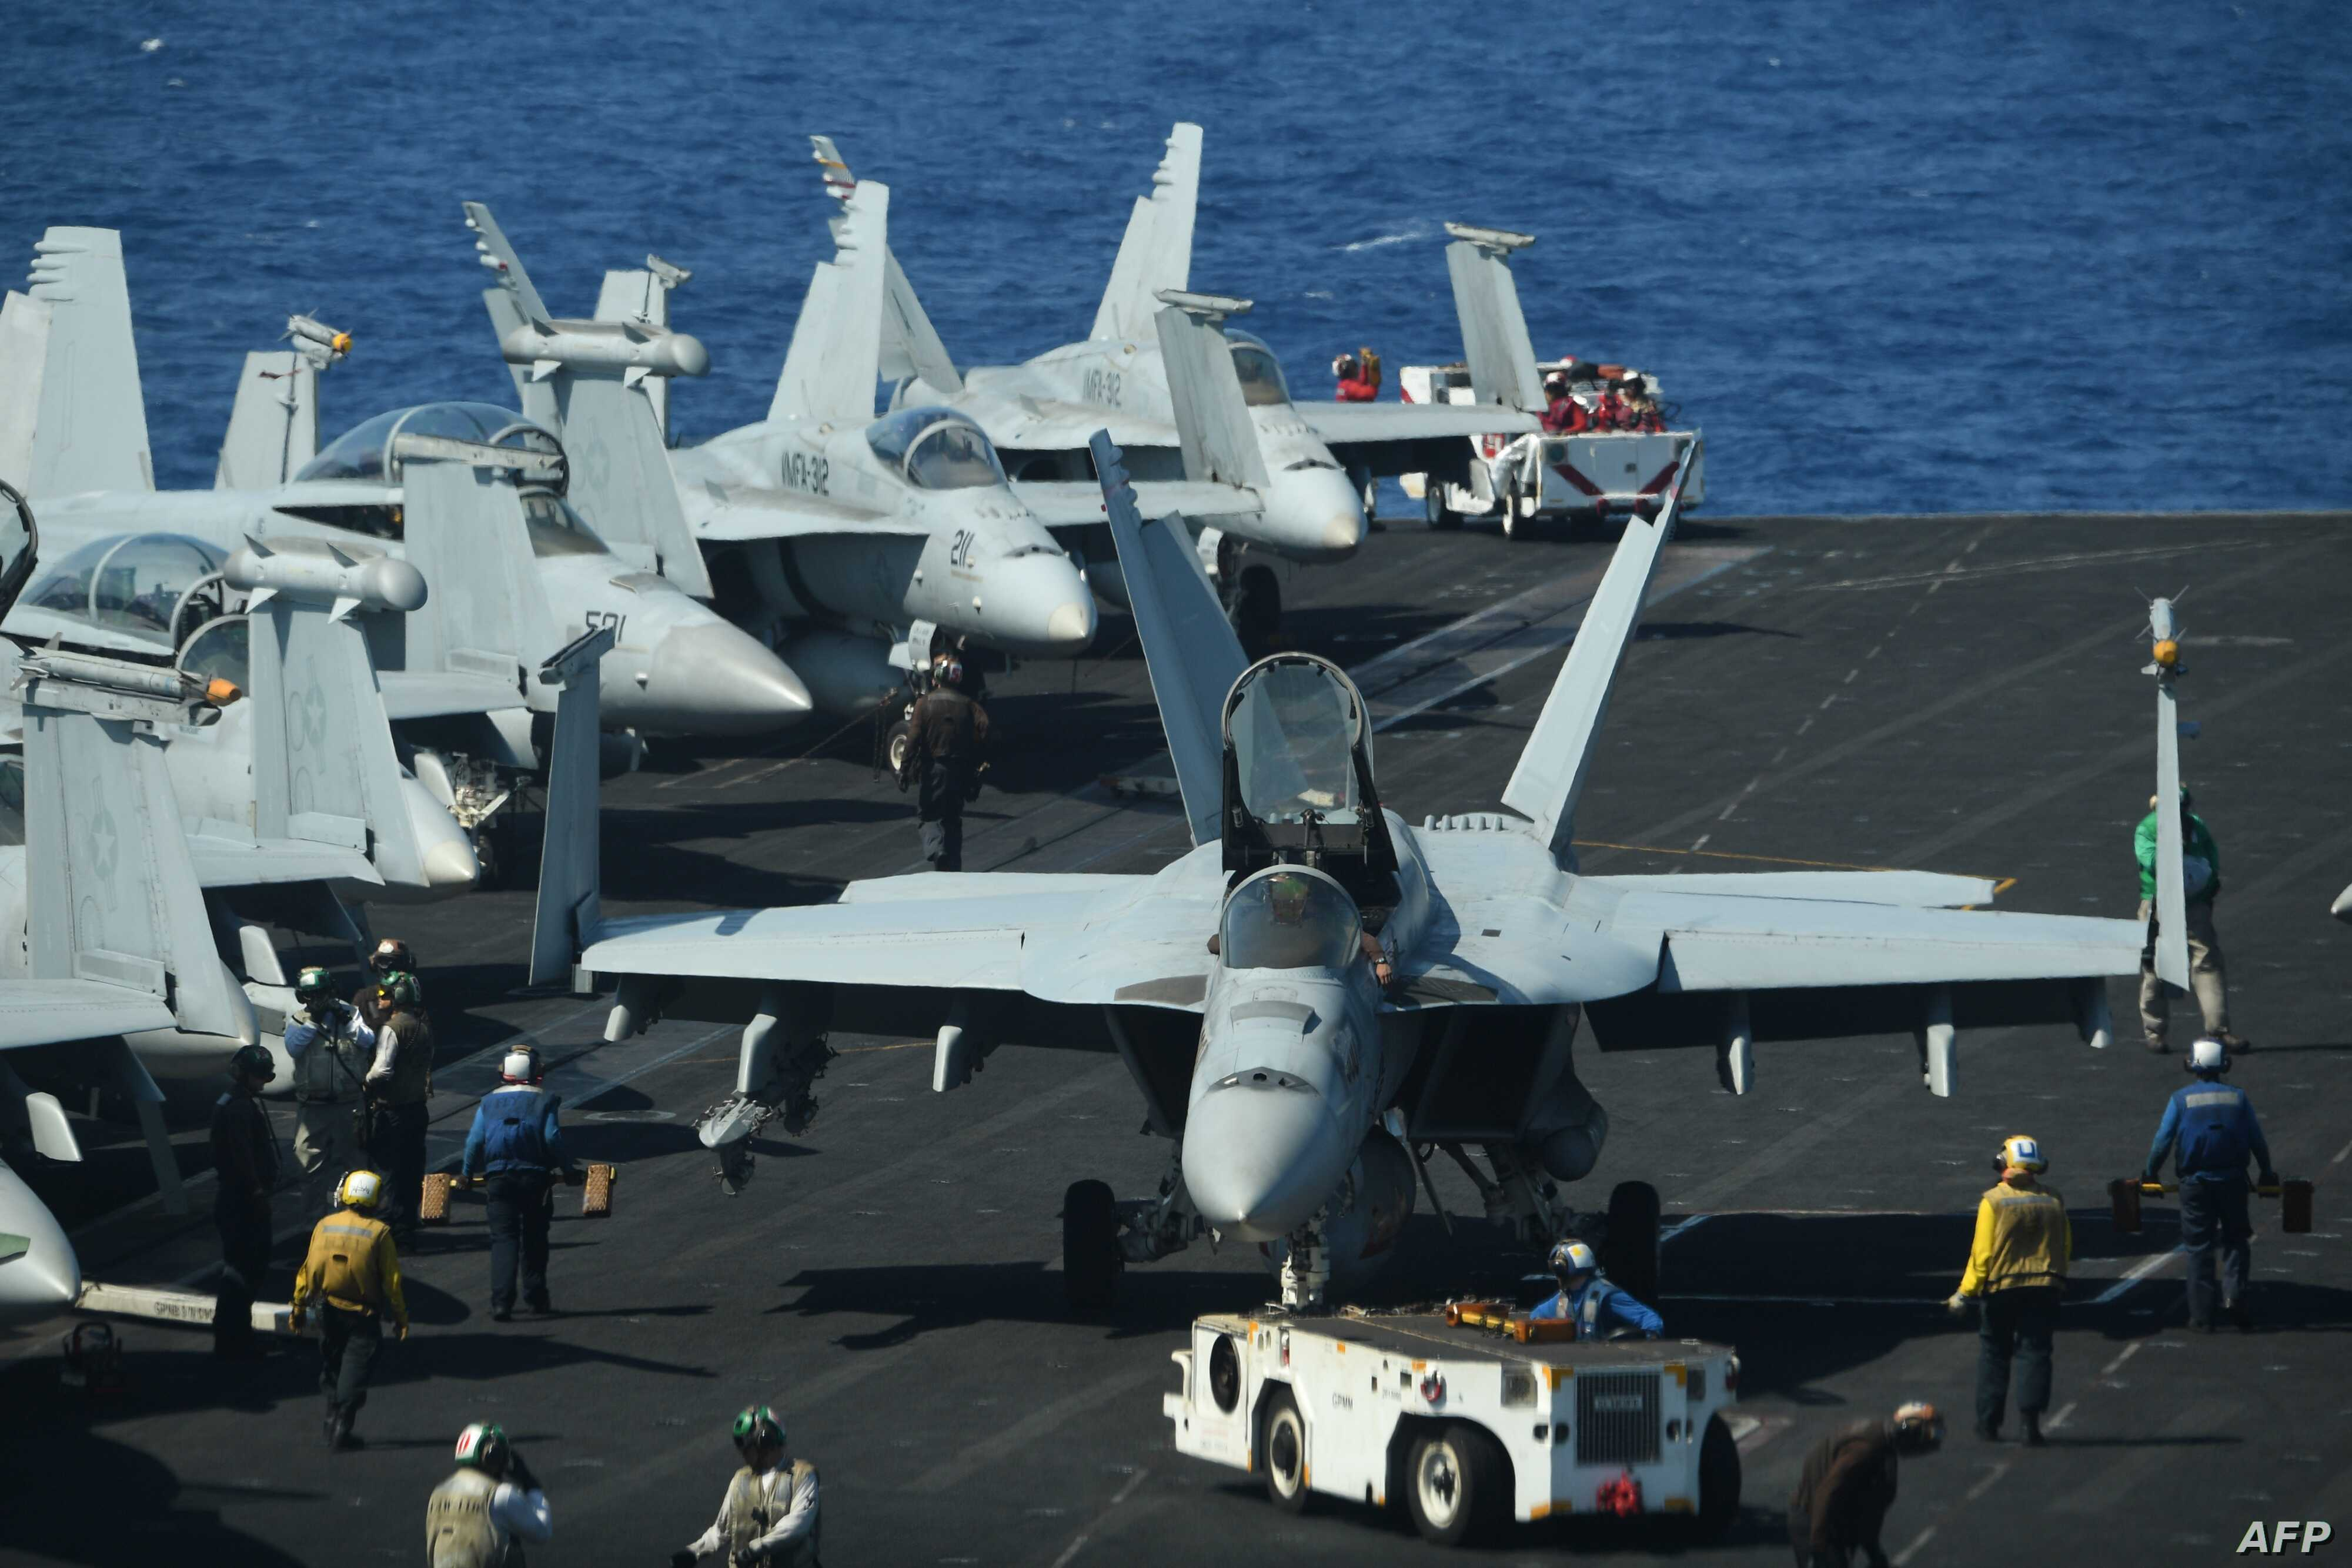 Sailors preapre FA-18 Hornet fighter jets for take off during a routine training aboard the US aircraft carrier Theodore Roosevelt in the South China sea on April 10, 2018.